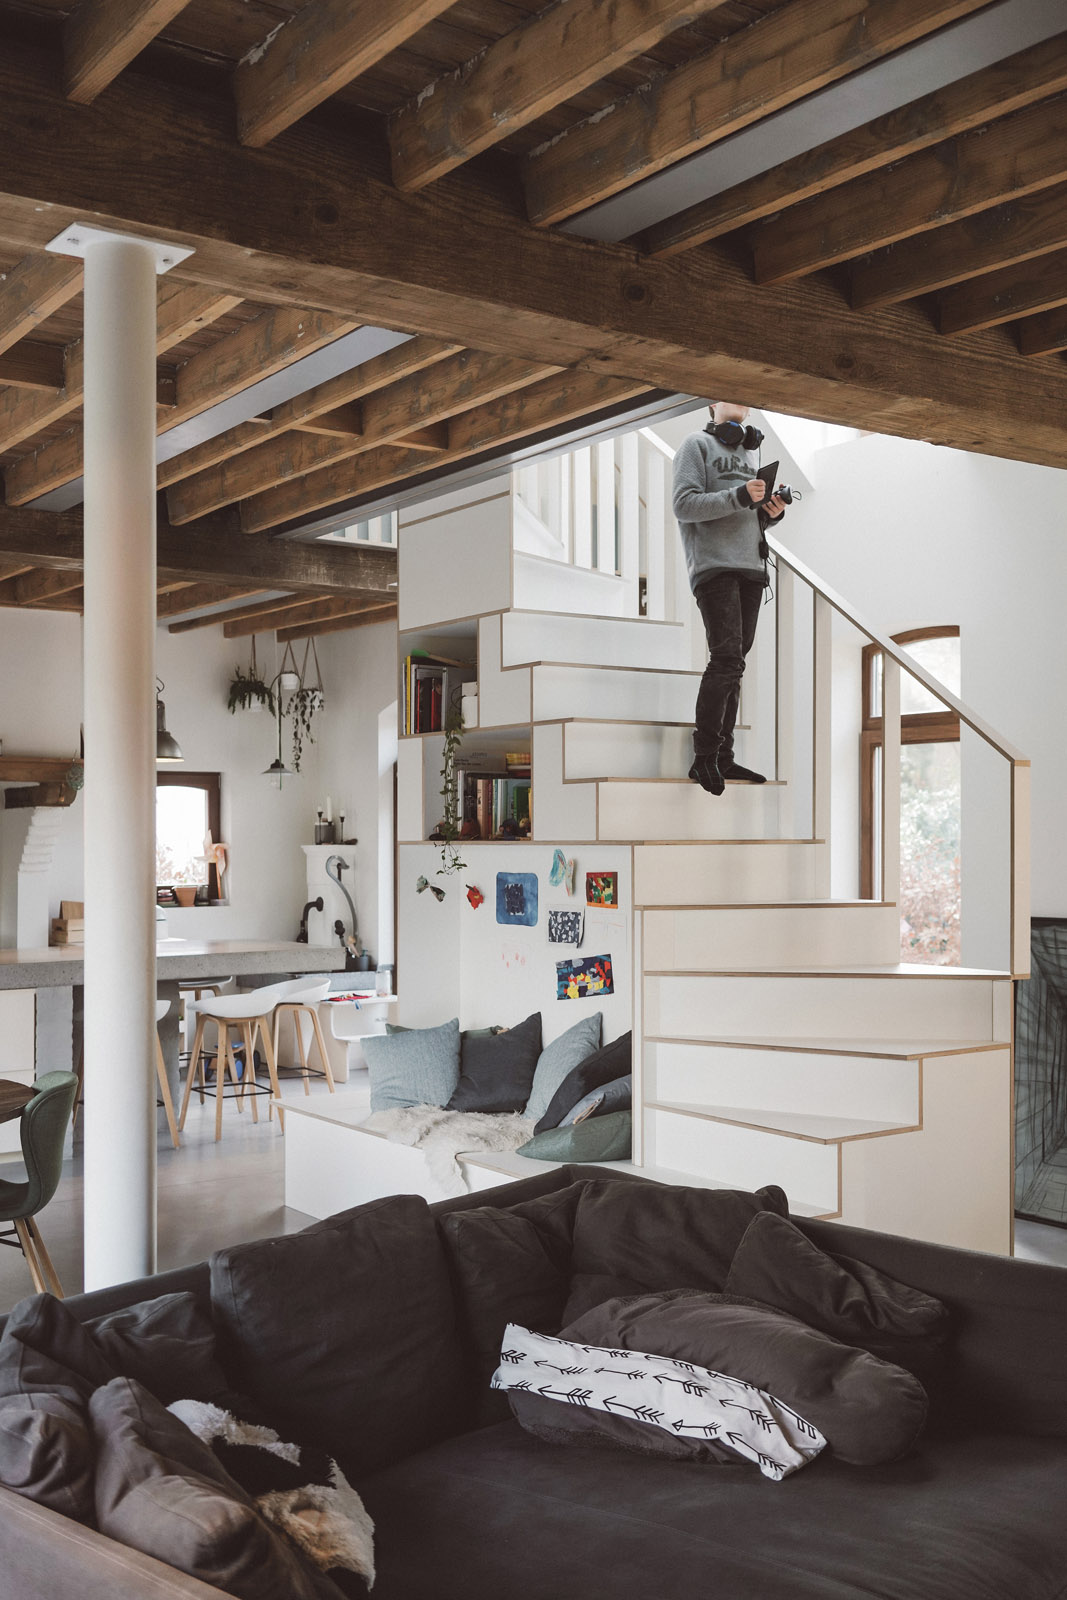 B-bis architecten + Nest